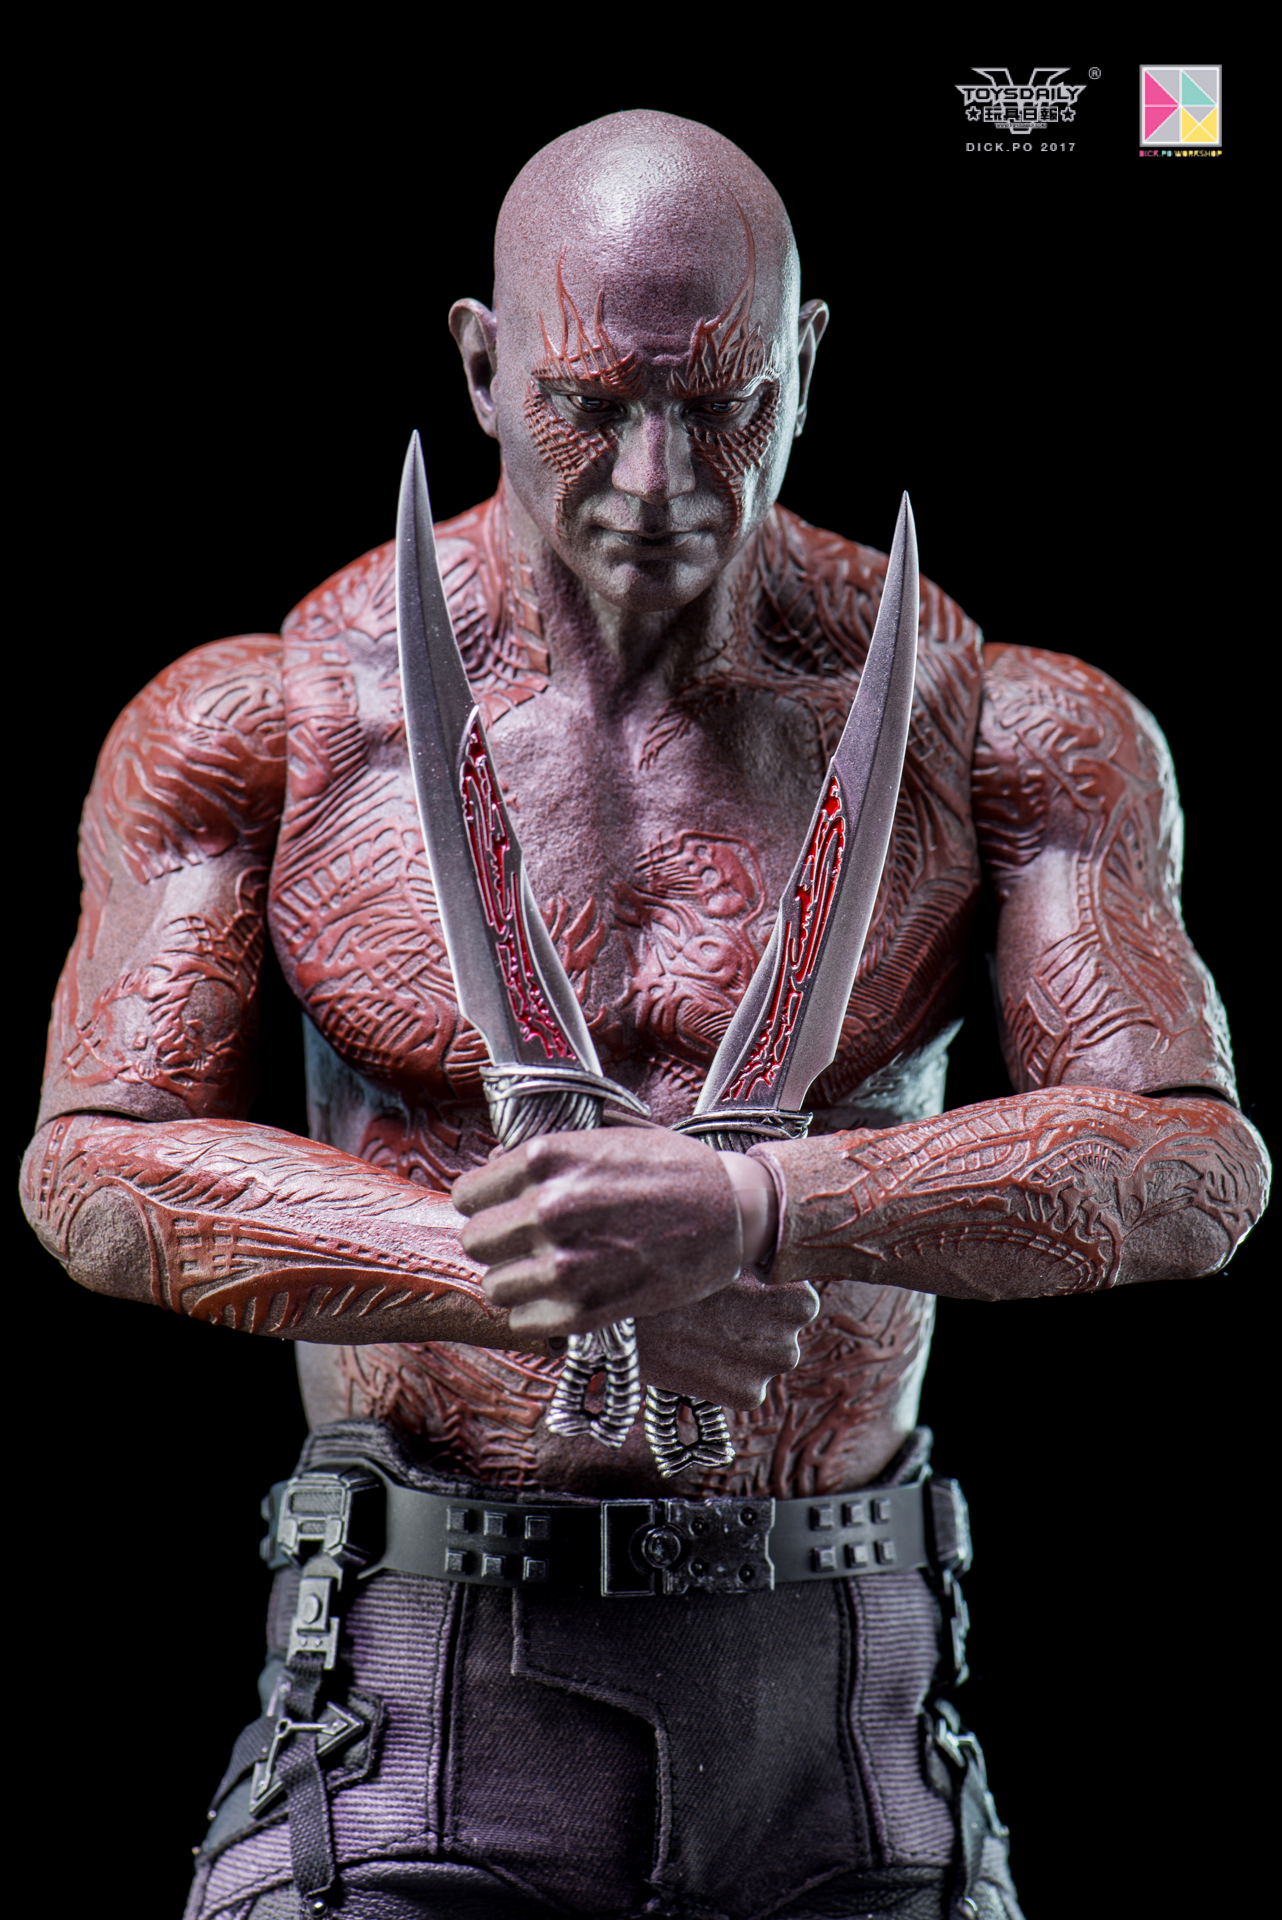 toysdaily_dick.po_Hottoys_DARX-40.jpg